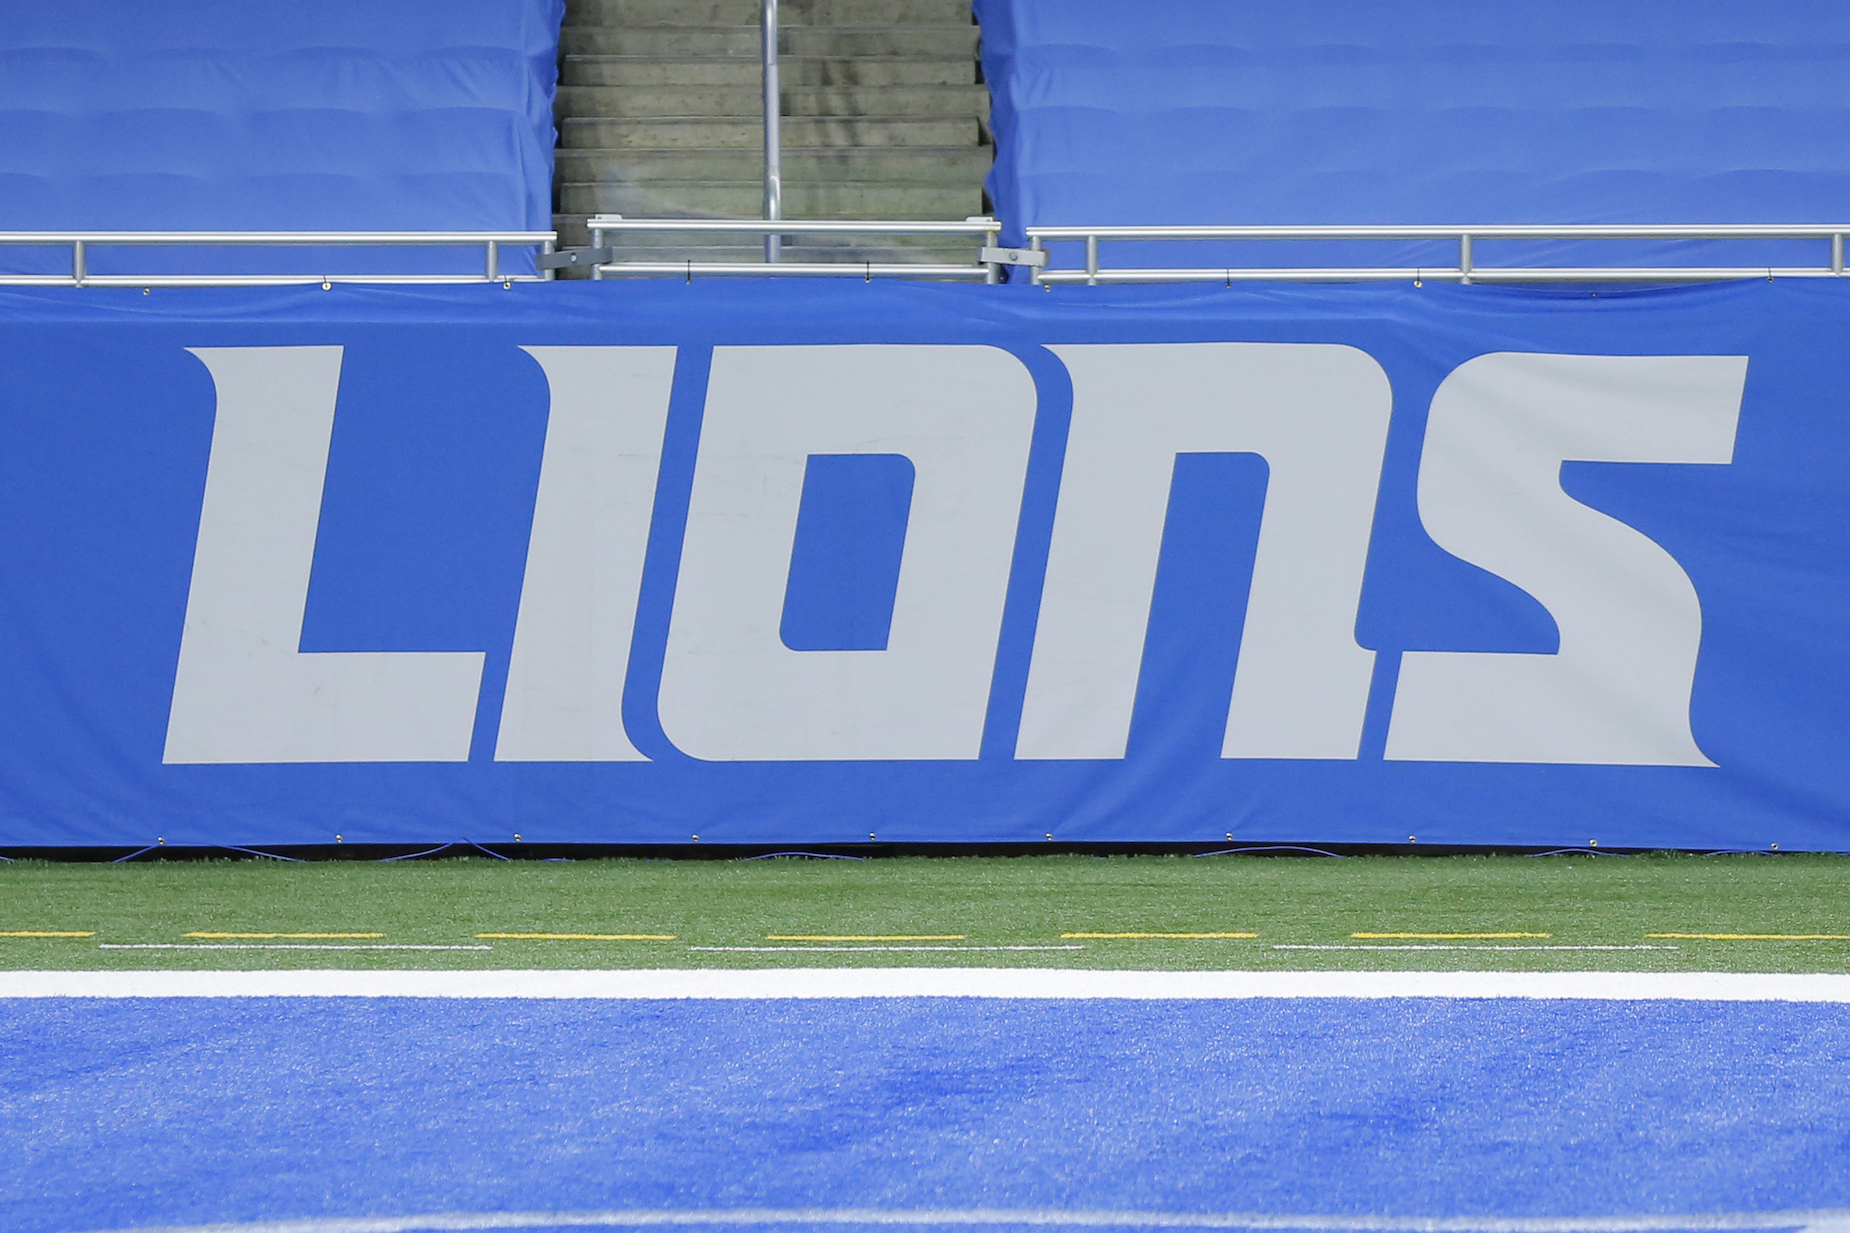 The Detroit Lions Are Worth More Than $2 Billion Despite Their Historic Struggles